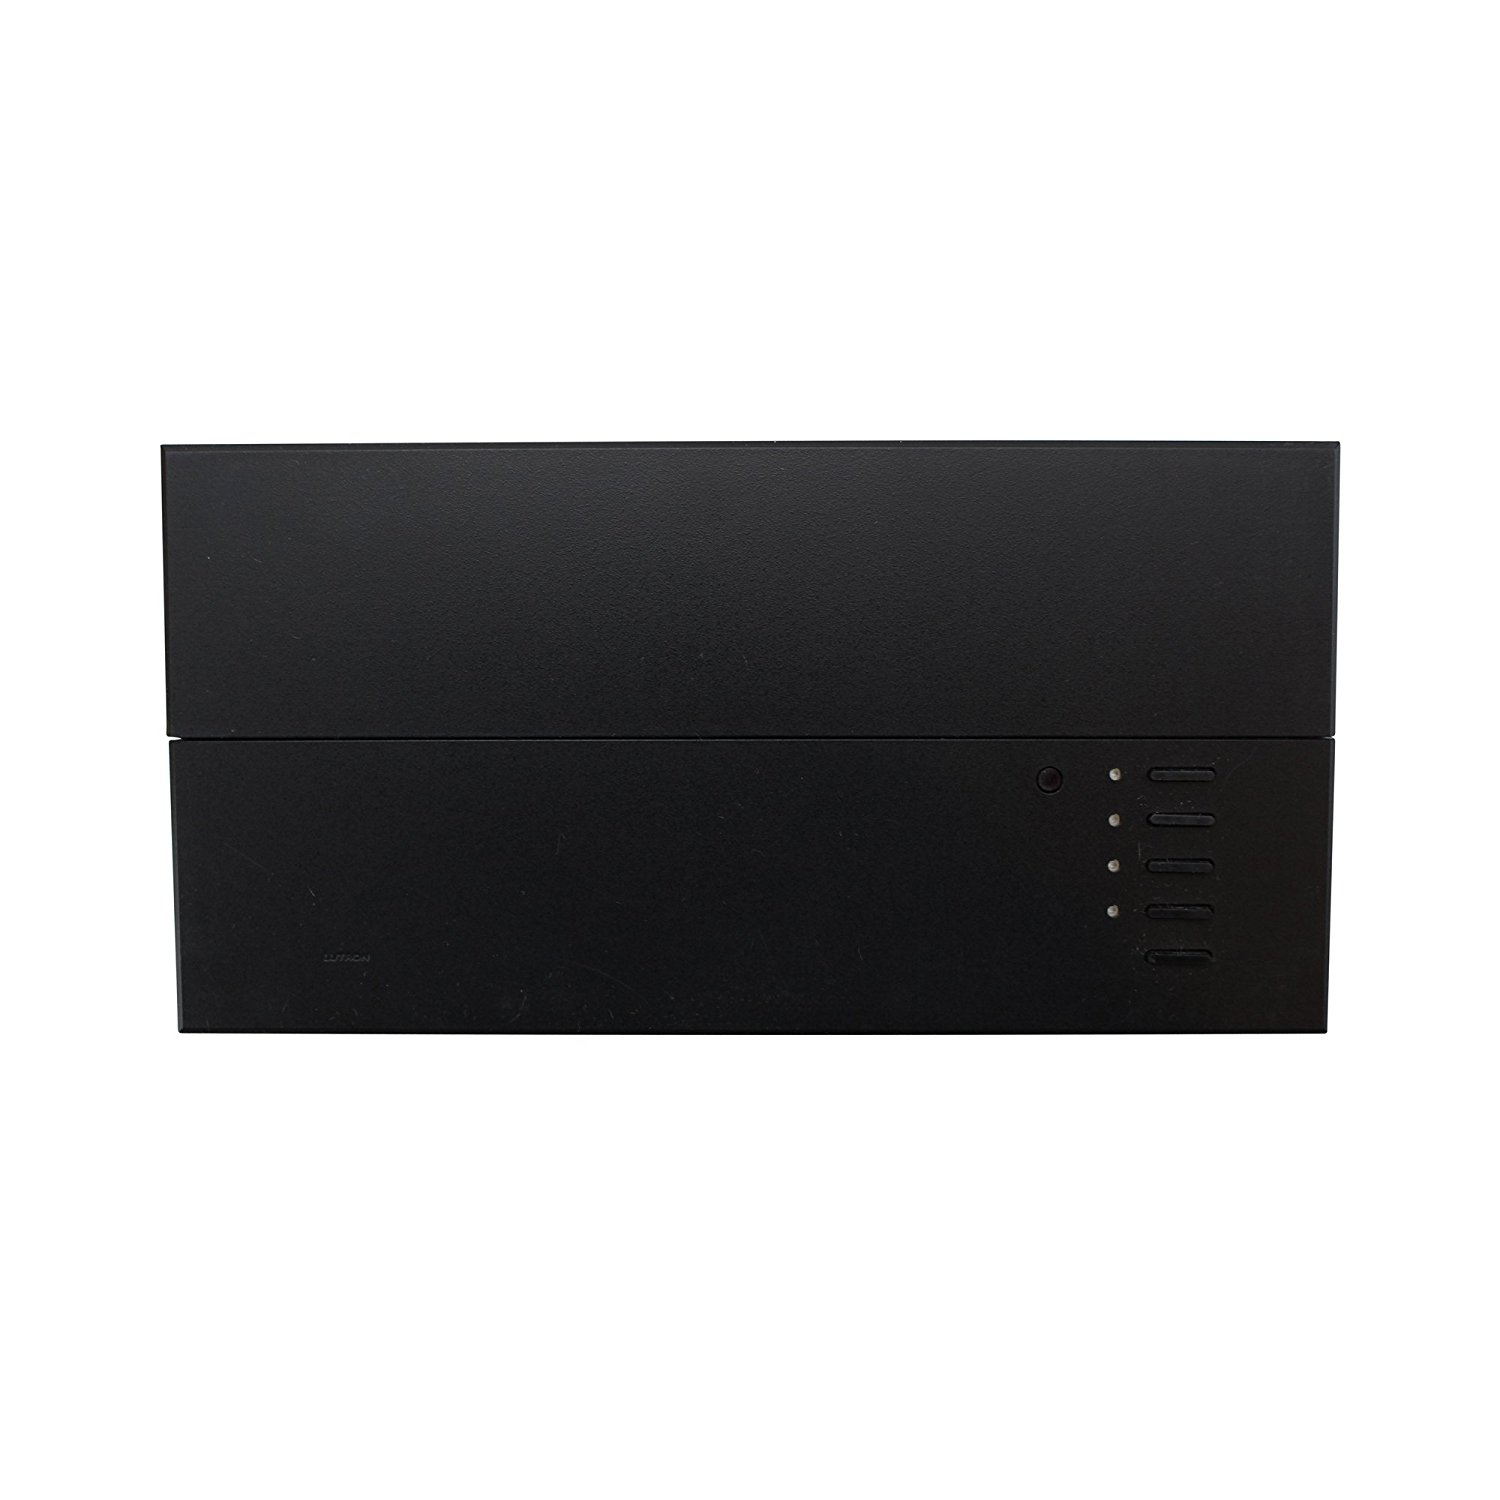 Lutron GRX-4524-BK Grafik Eye 4 Scene Lighting Control Wall Station, Black